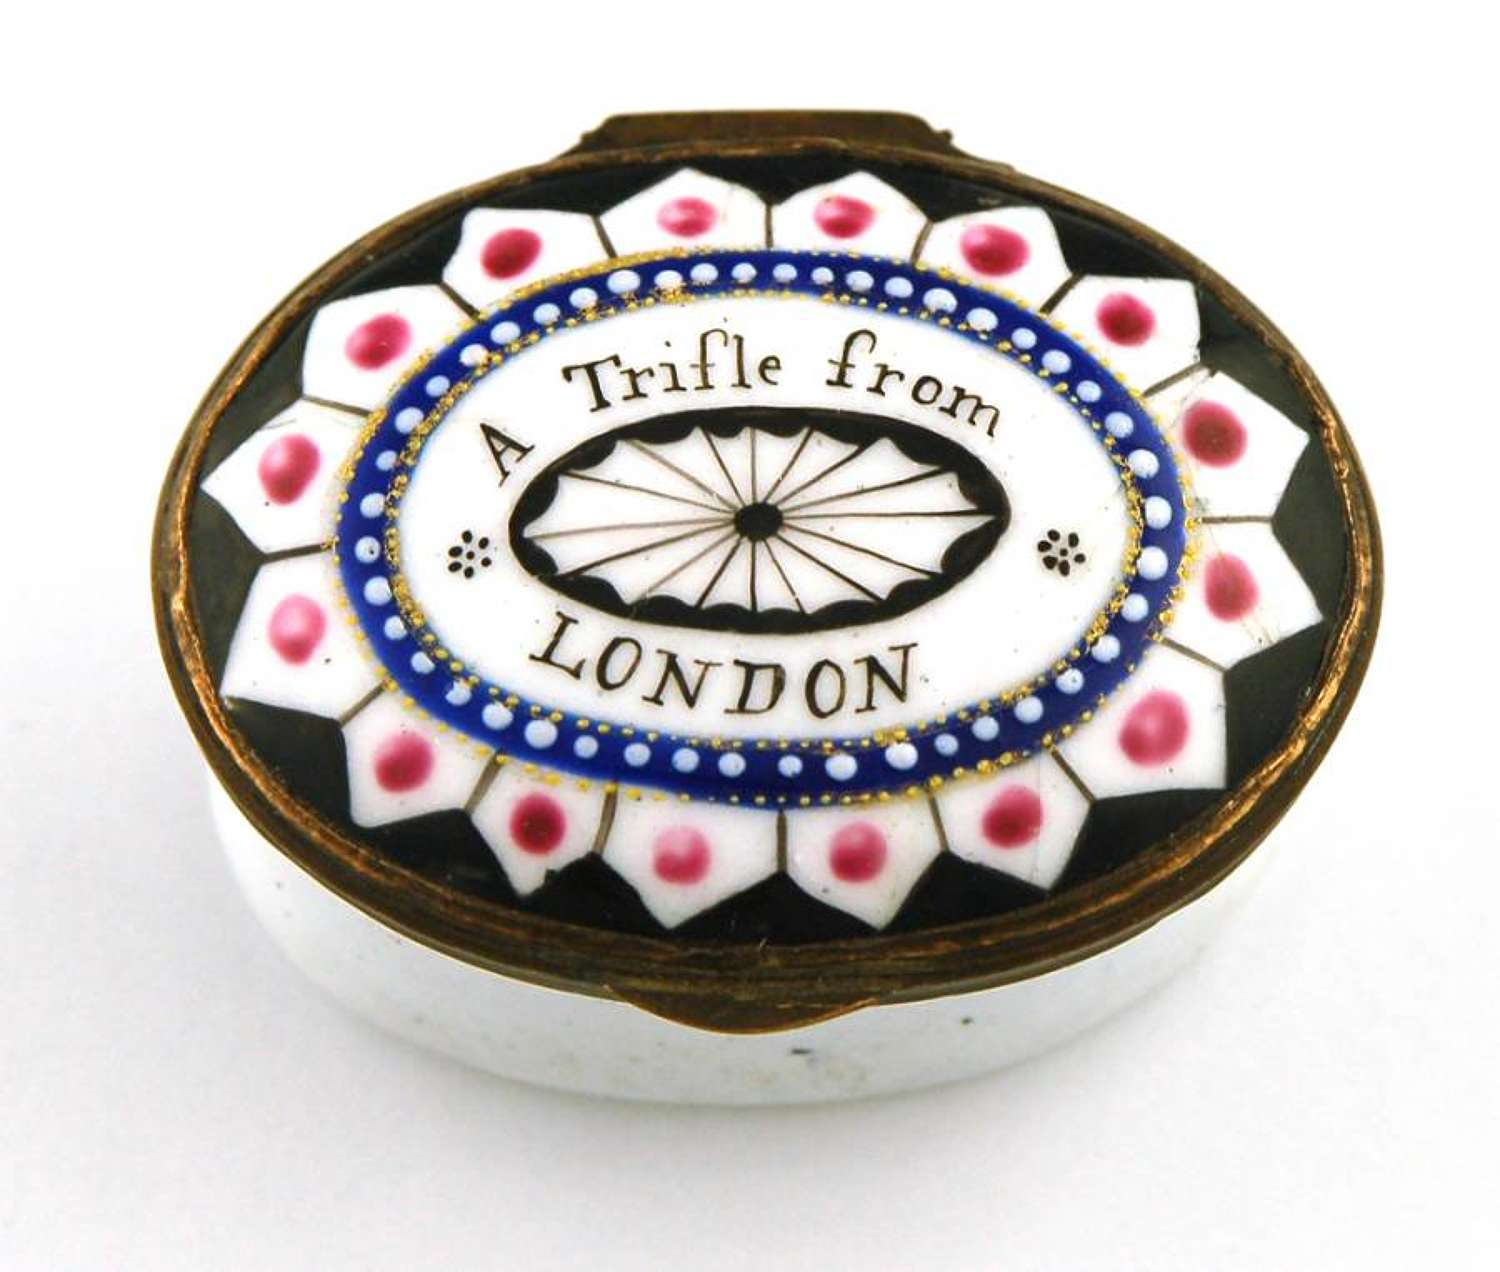 A Trifle from London